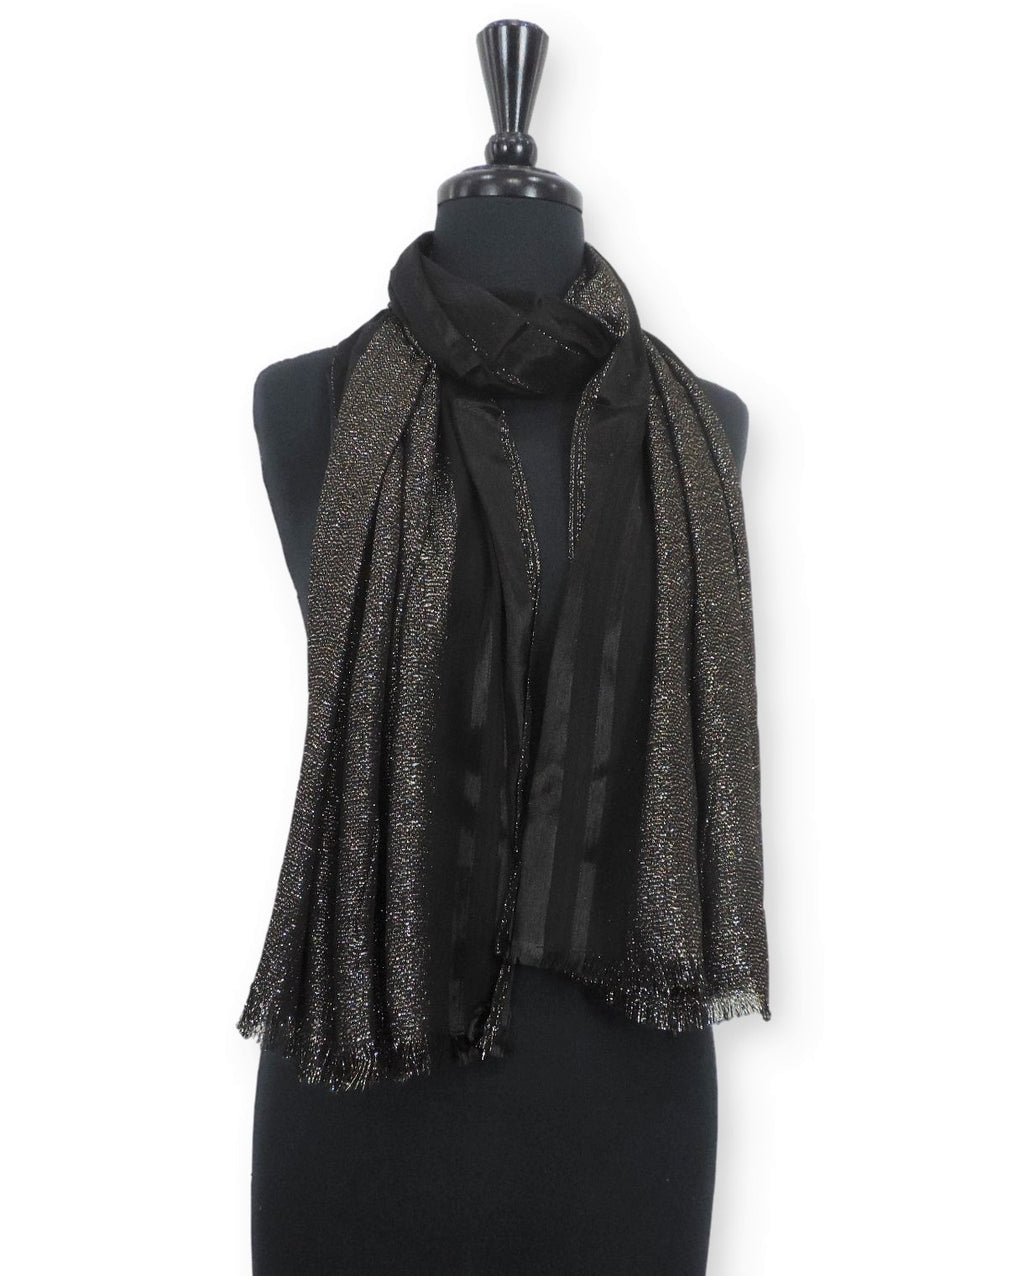 Black Shimmer Cotton Scarf - Global Trendz Fashion®